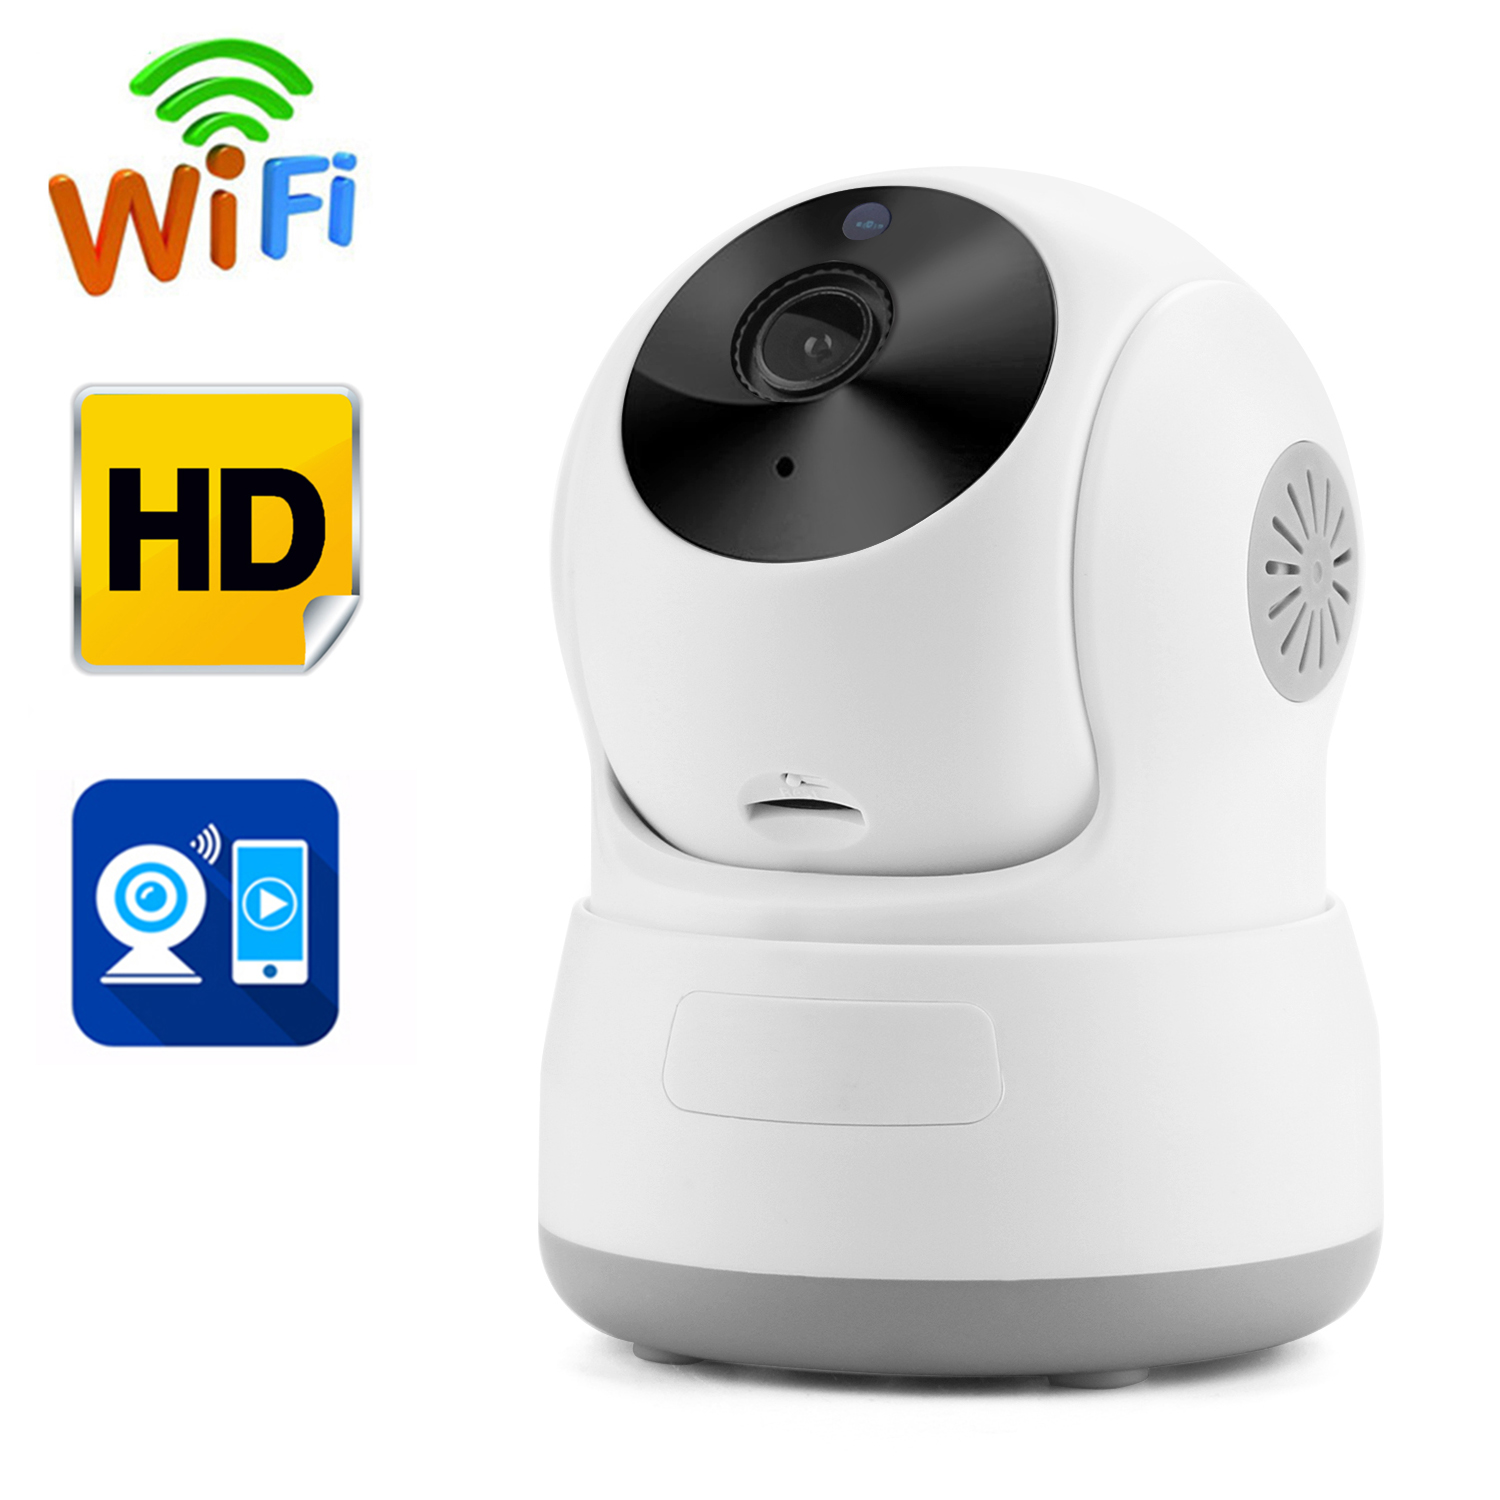 AGPtek Security Camera Network Indoor CCTV Night Vision HD Wireless Pan&Tilt WIFI IP Camera